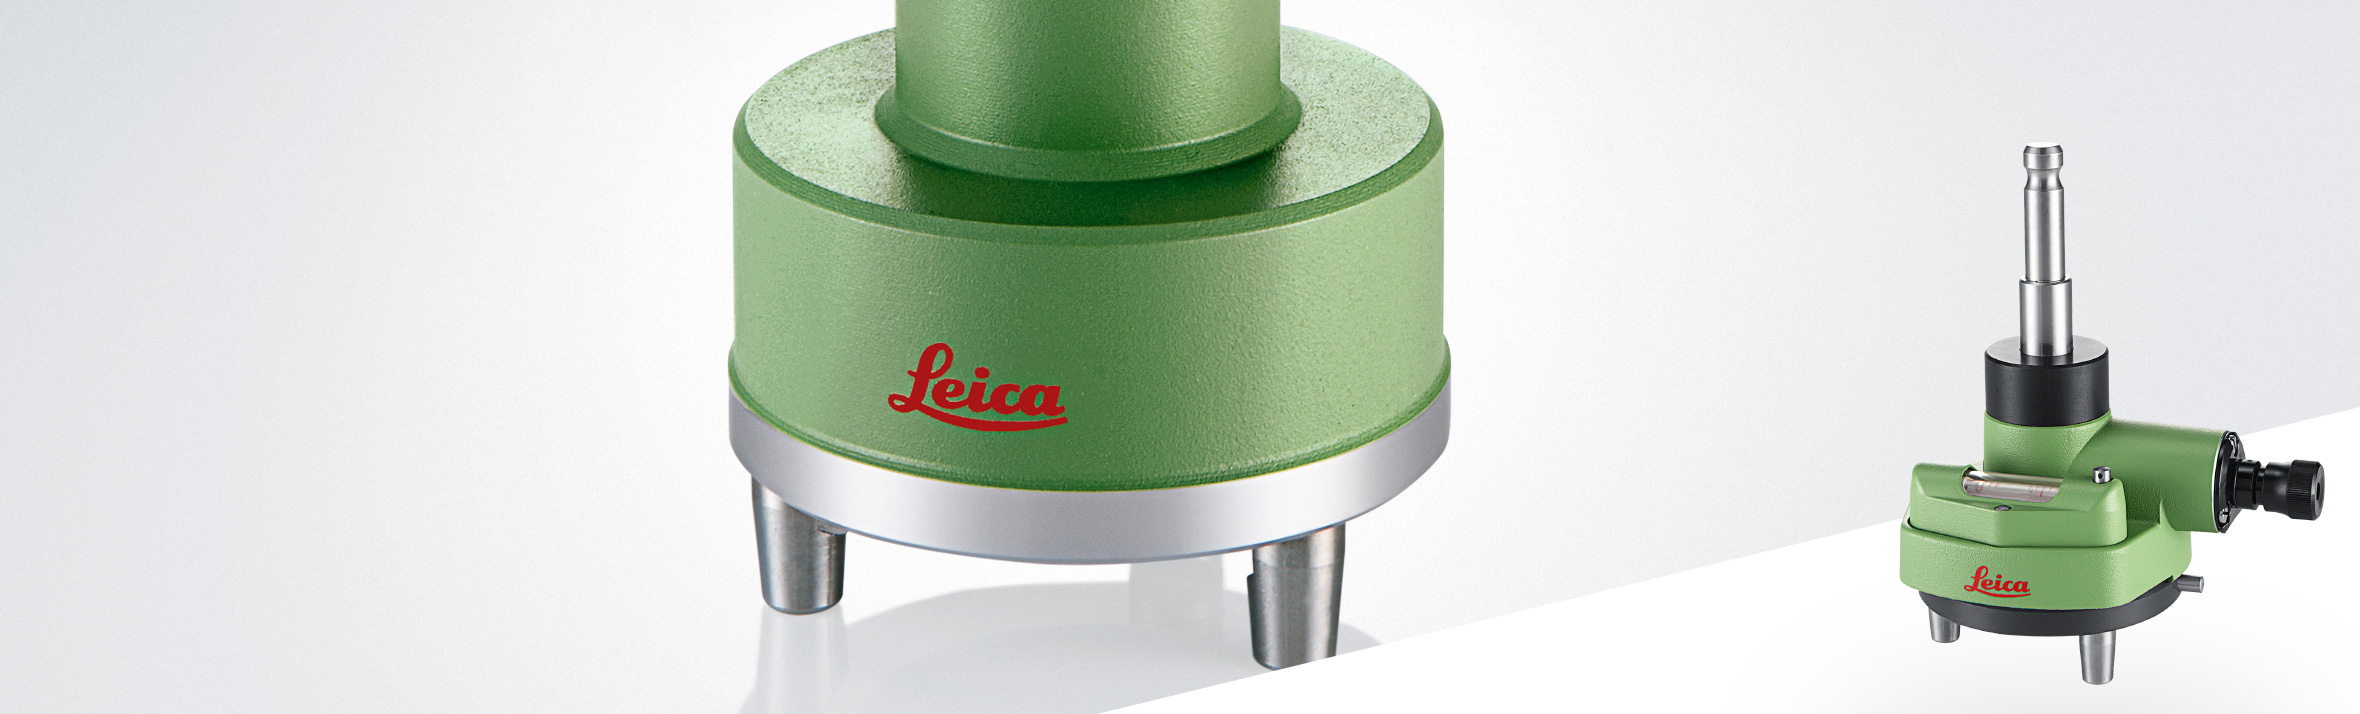 Leica Geosystems Carriers